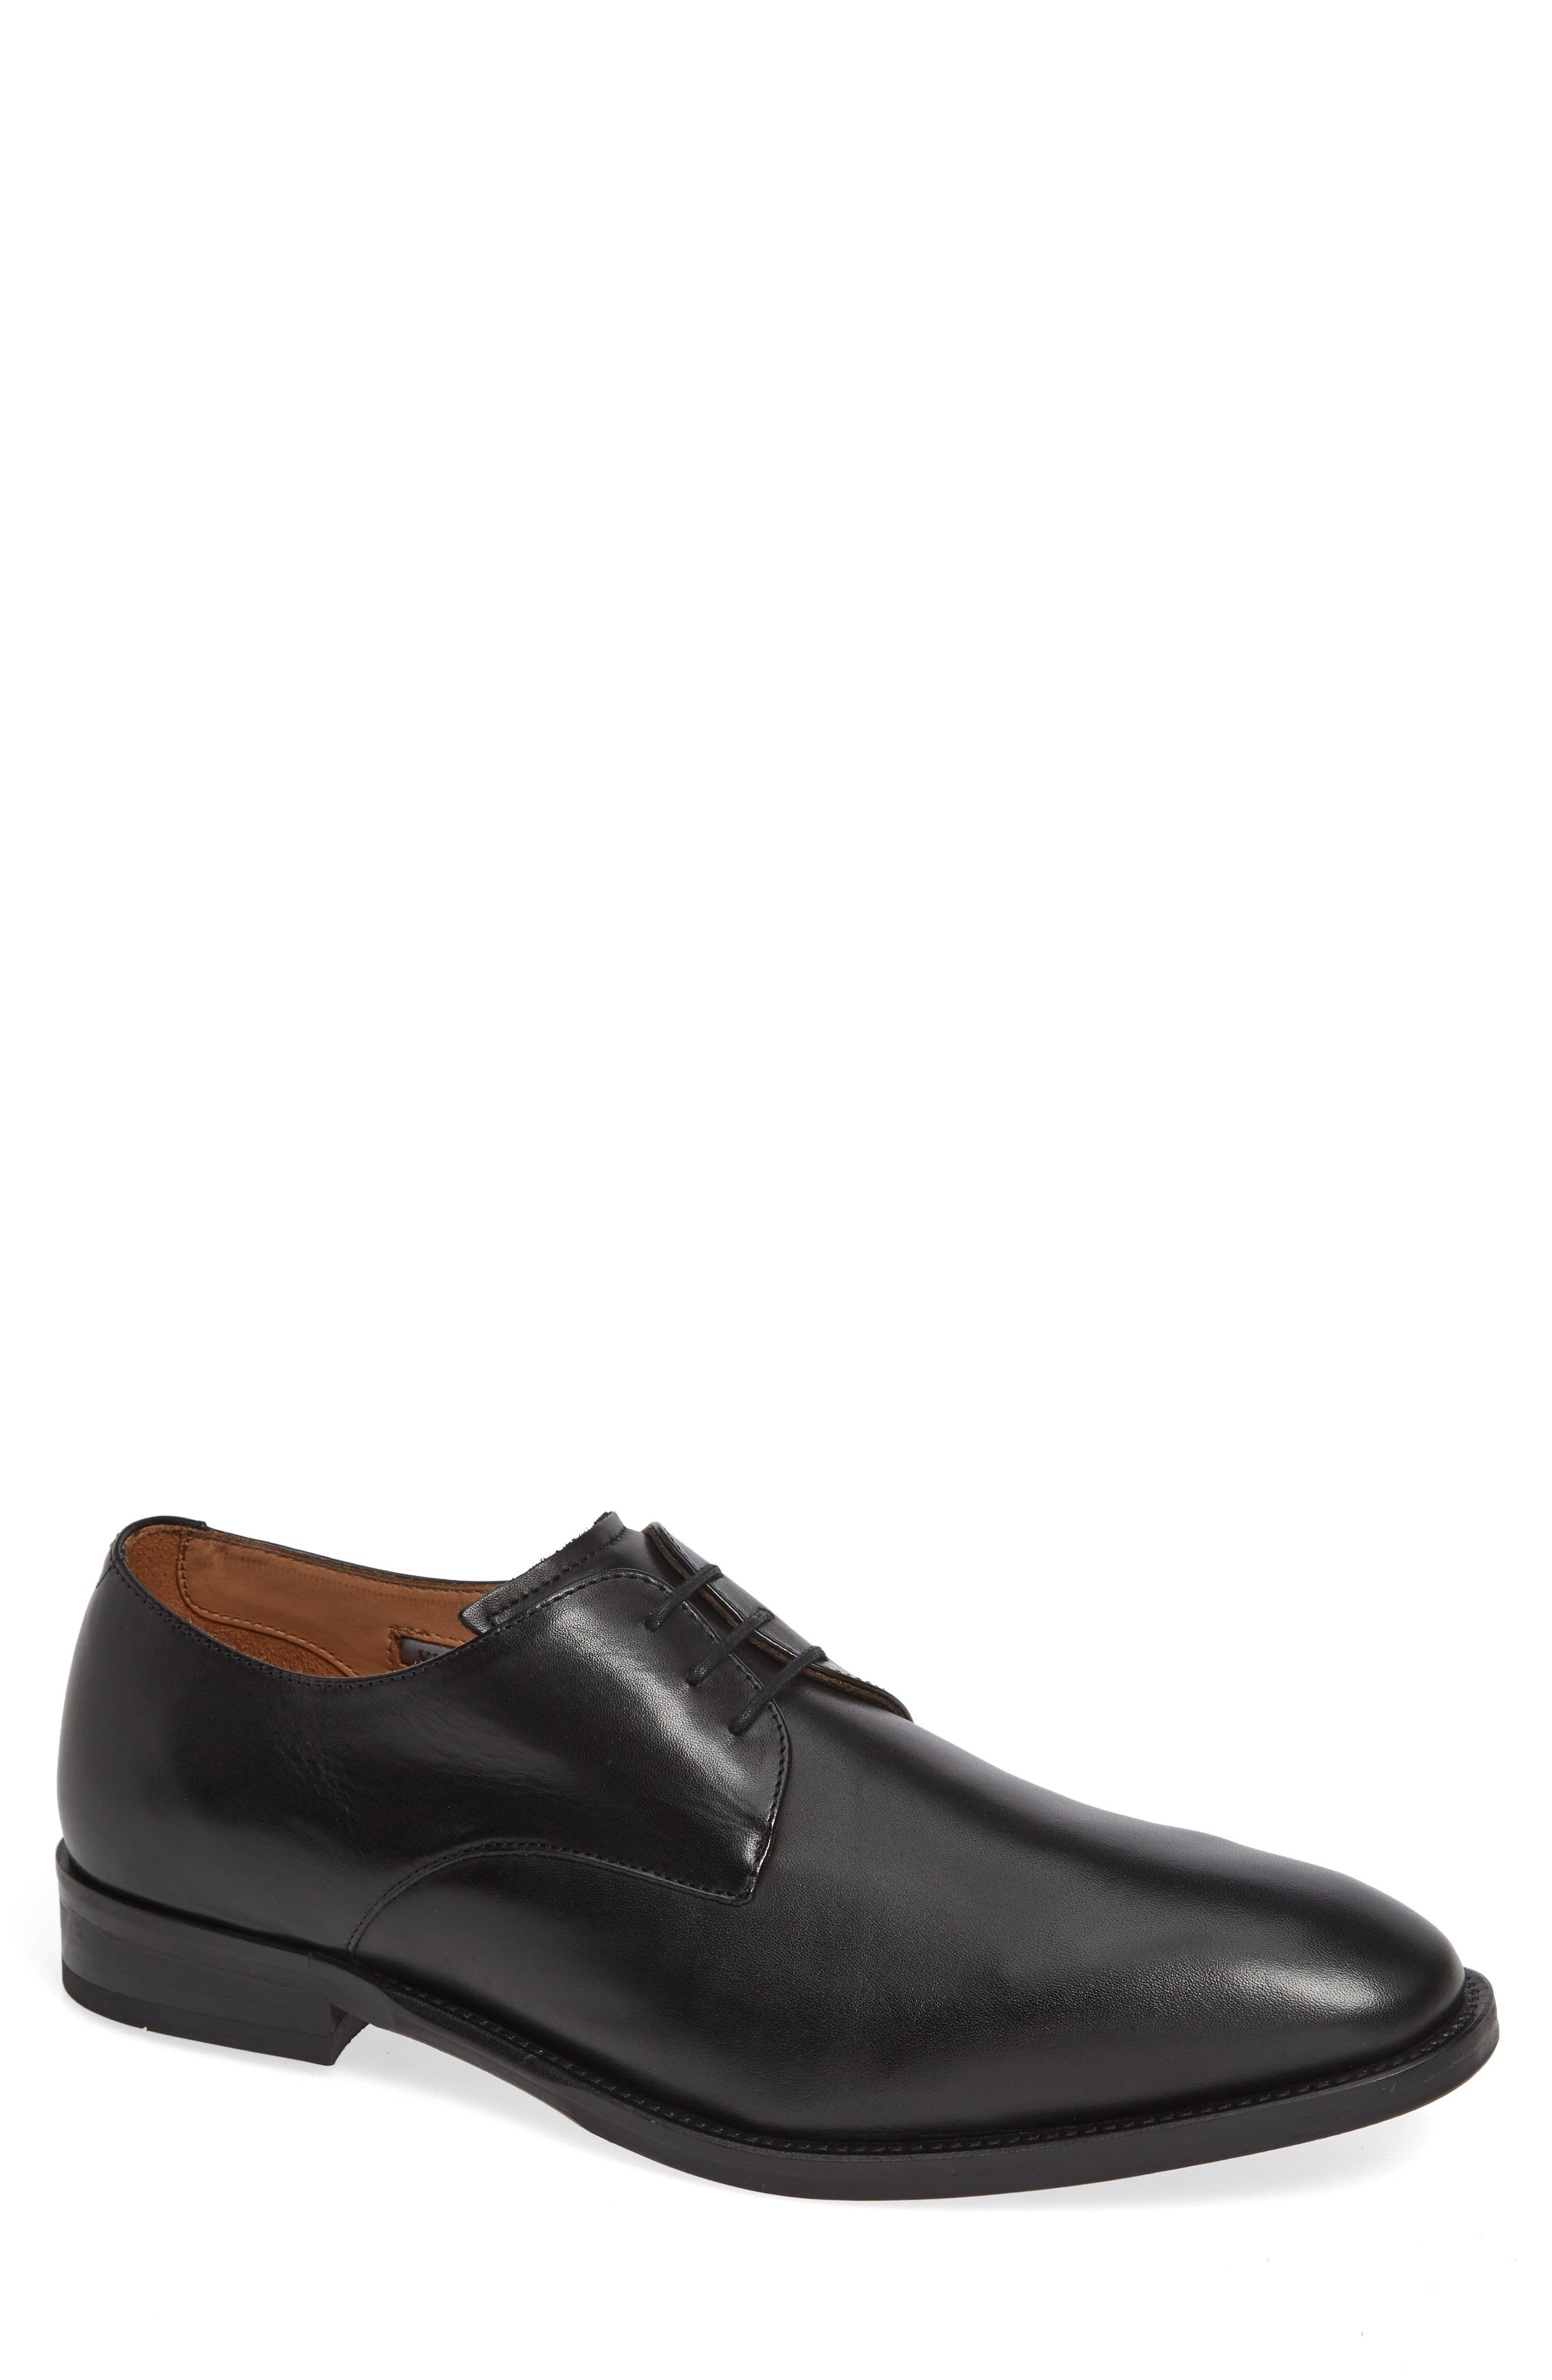 Hasper Plain Toe Derby,                         Main,                         color, BLACK LEATHER